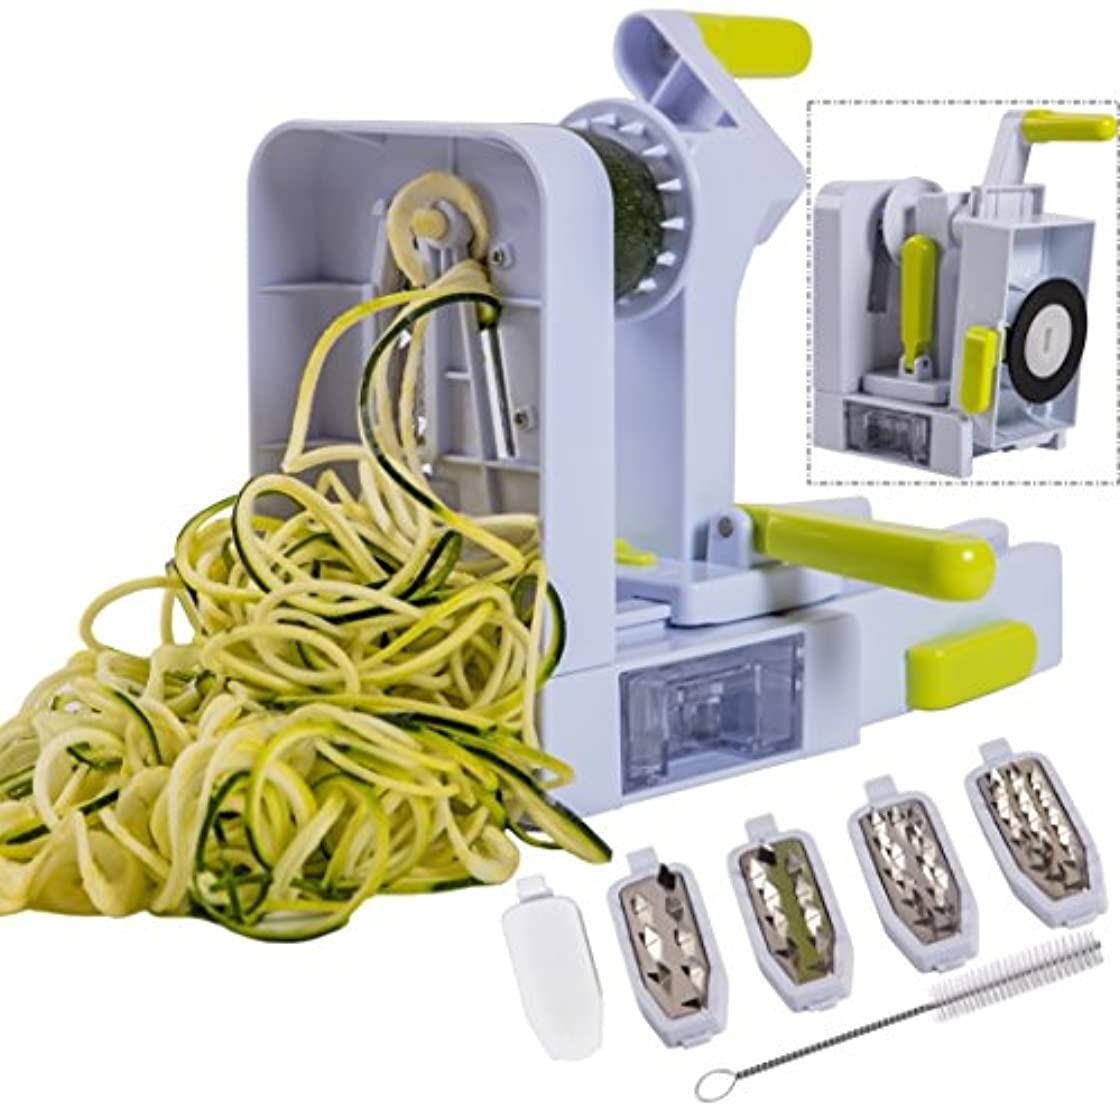 軌道ガロン粒Brieftons QuickFold 5-Blade Spiralizer: 2018 Model, Versatile & Compact Foldable Vegetable Spiral Slicer, Best Veggie Pasta Spaghetti Maker for Low Carb/Paleo/Gluten-Free with Brush & 3 Recipe Ebooks